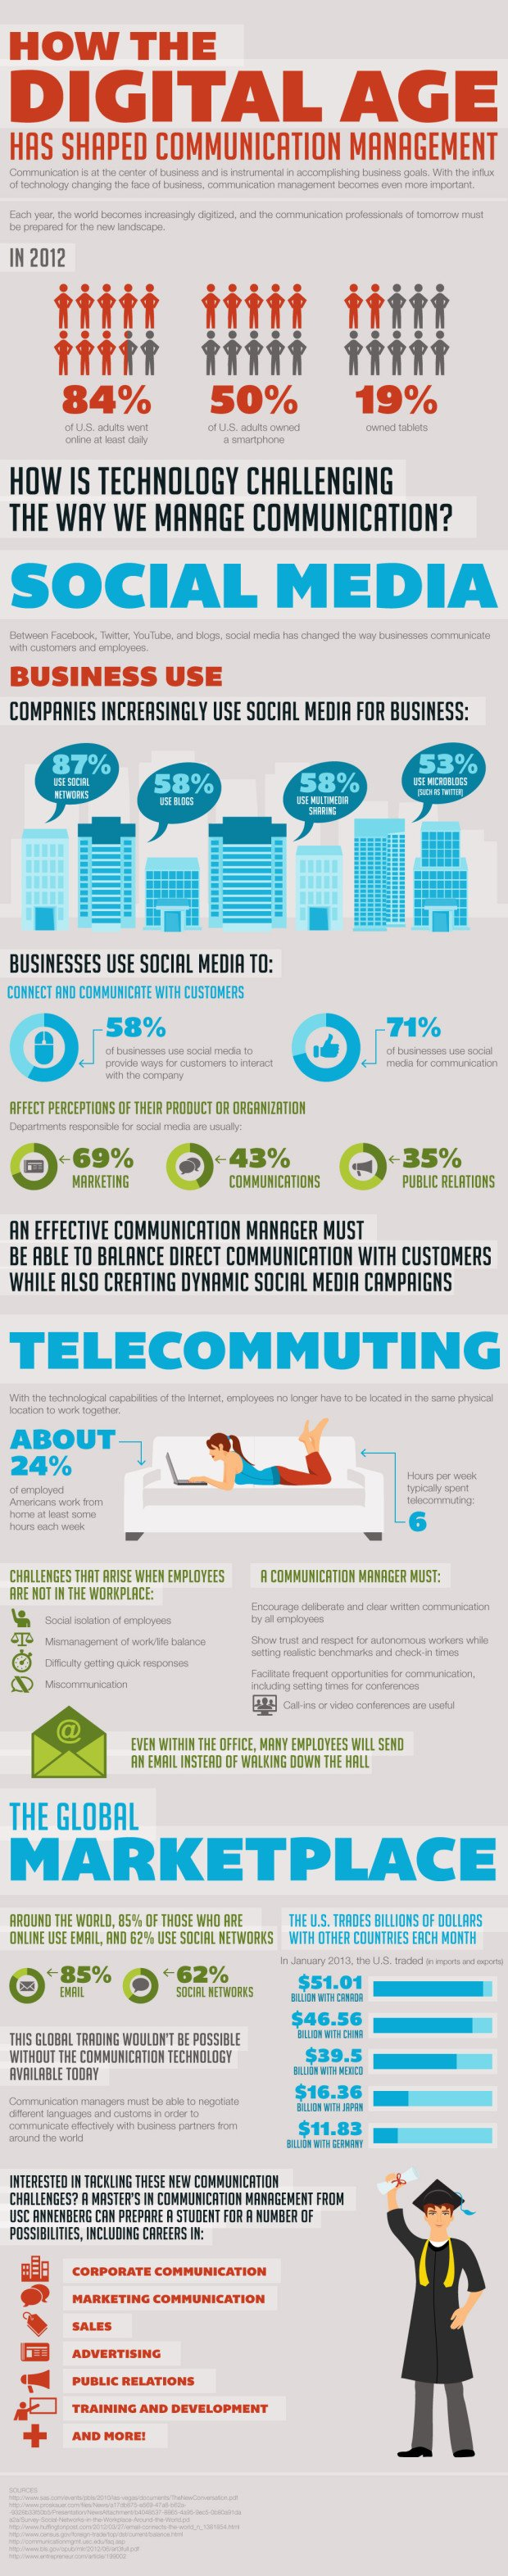 how-the-digital-age-has-shaped-communication-management_521bc04597a42